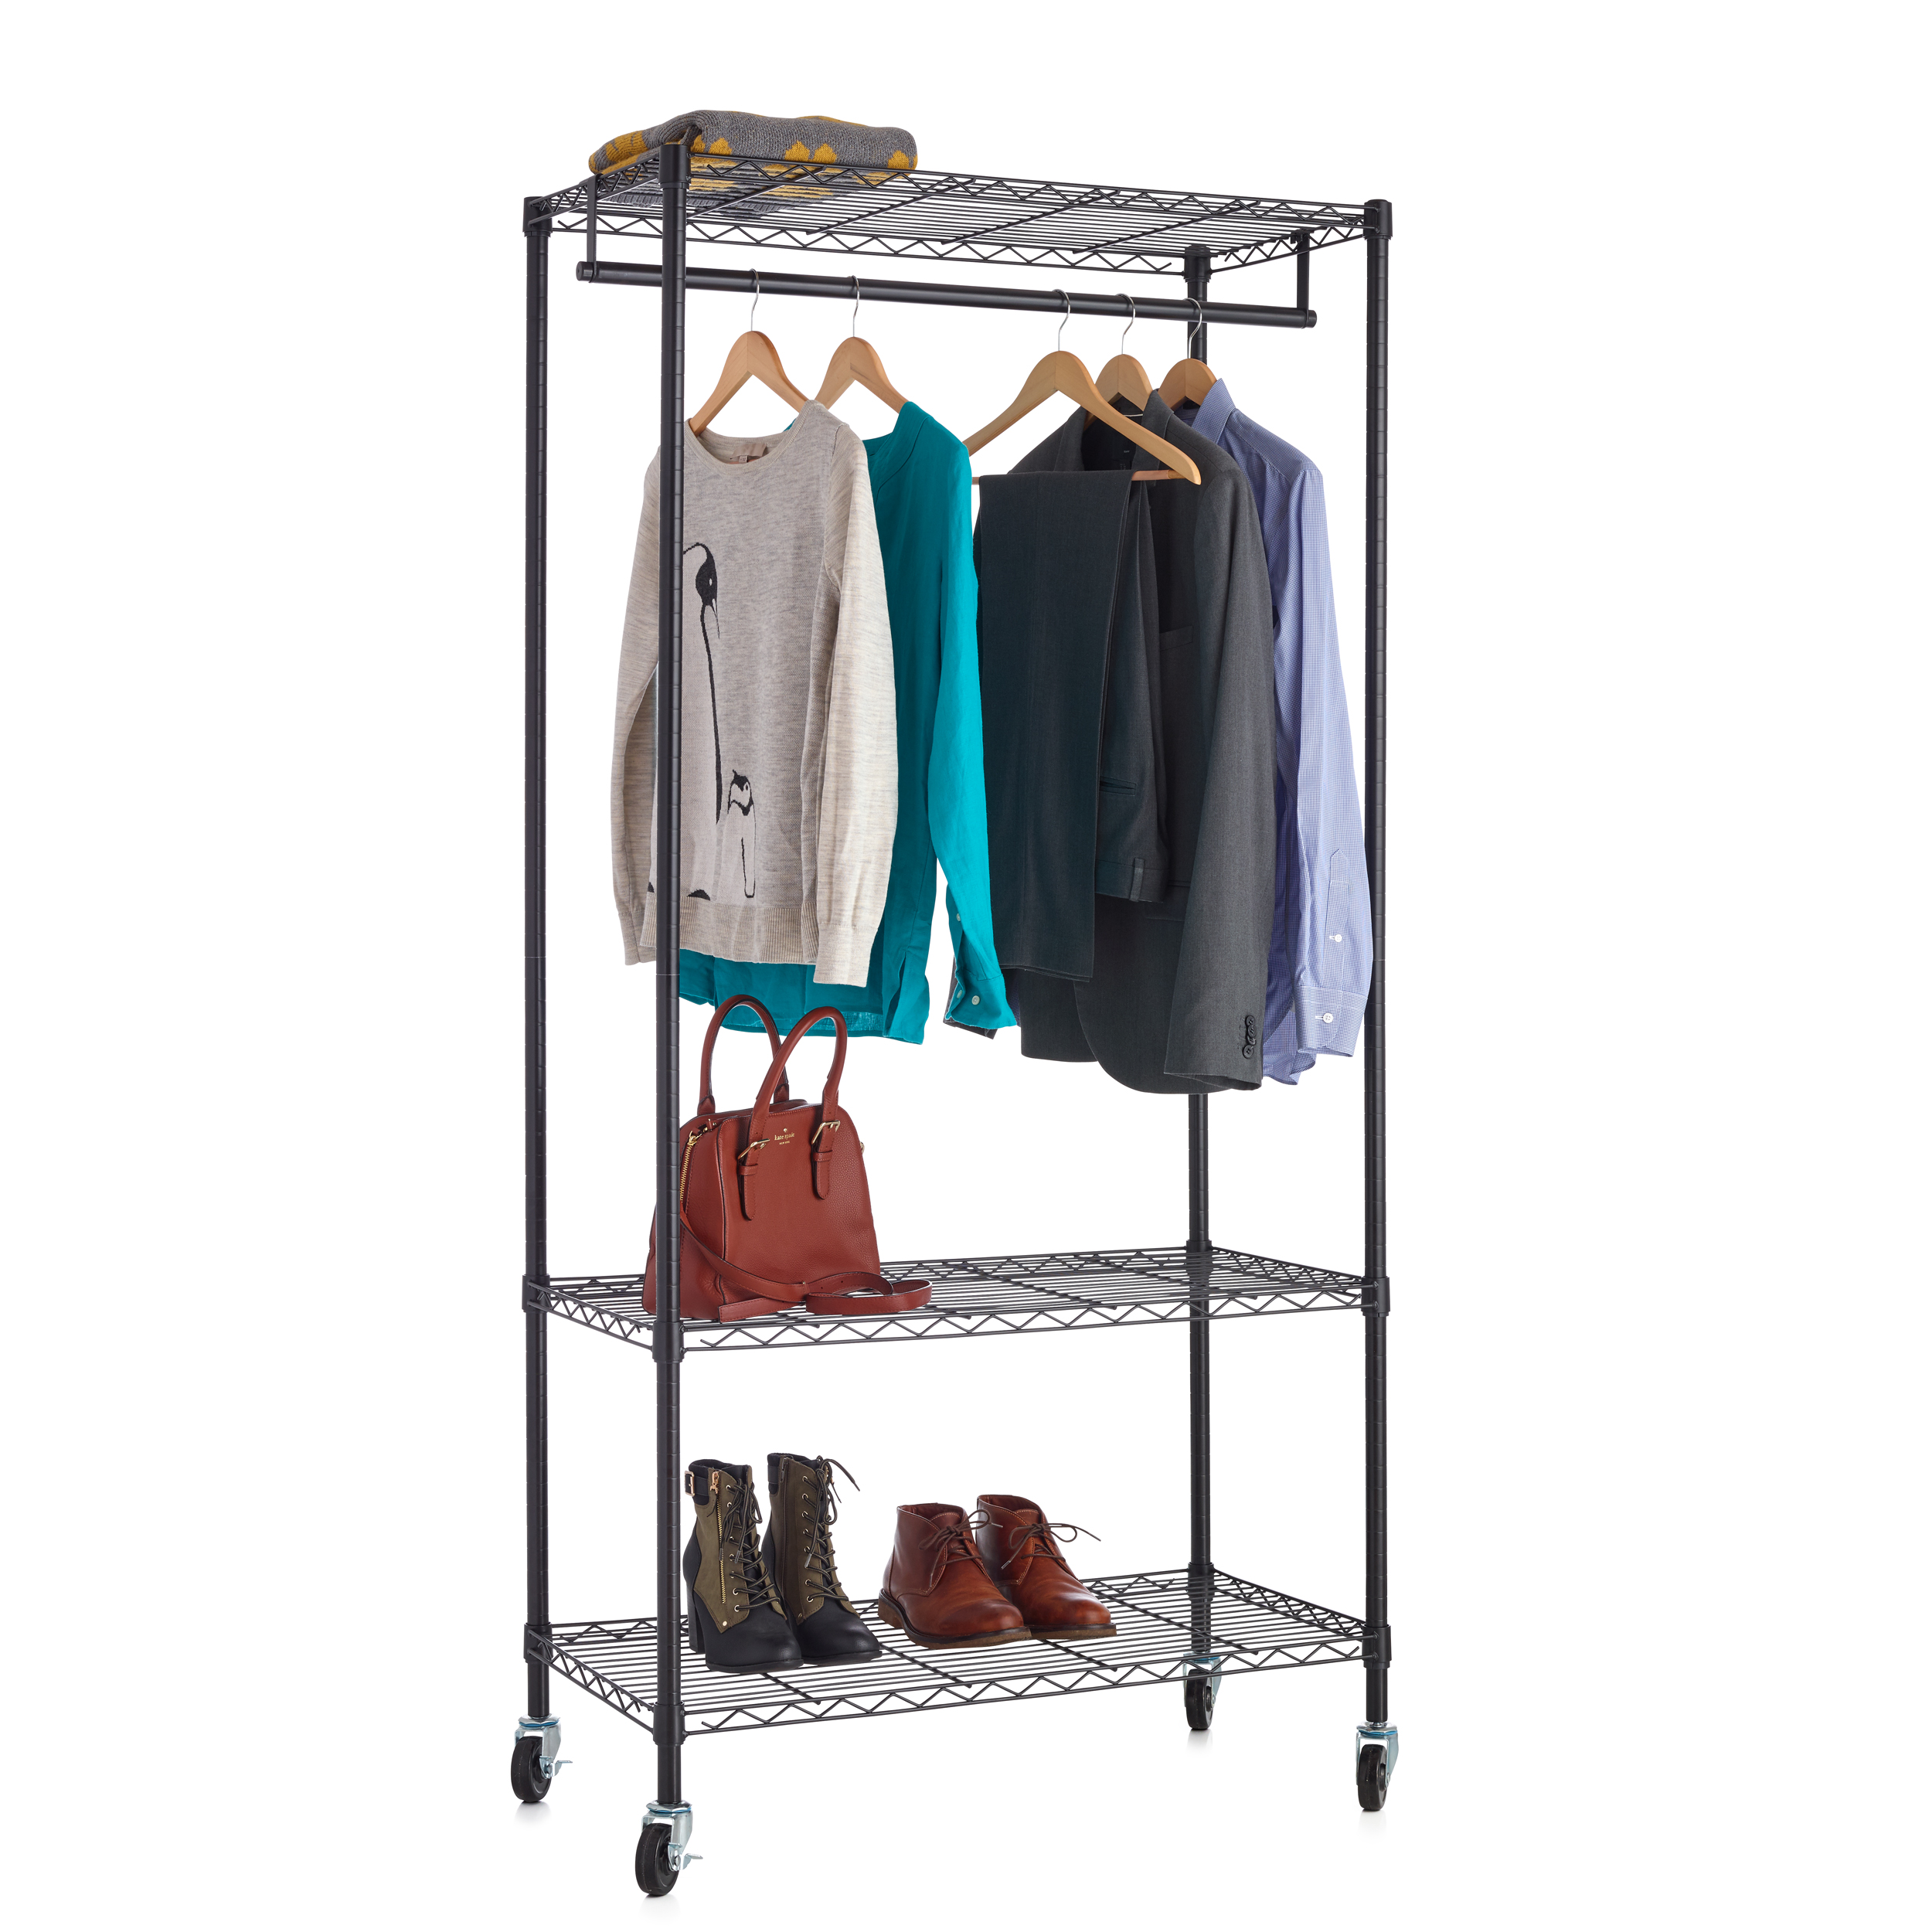 18x36 3 Tier Wire Clothes Rack Black Wire Shelf Additions